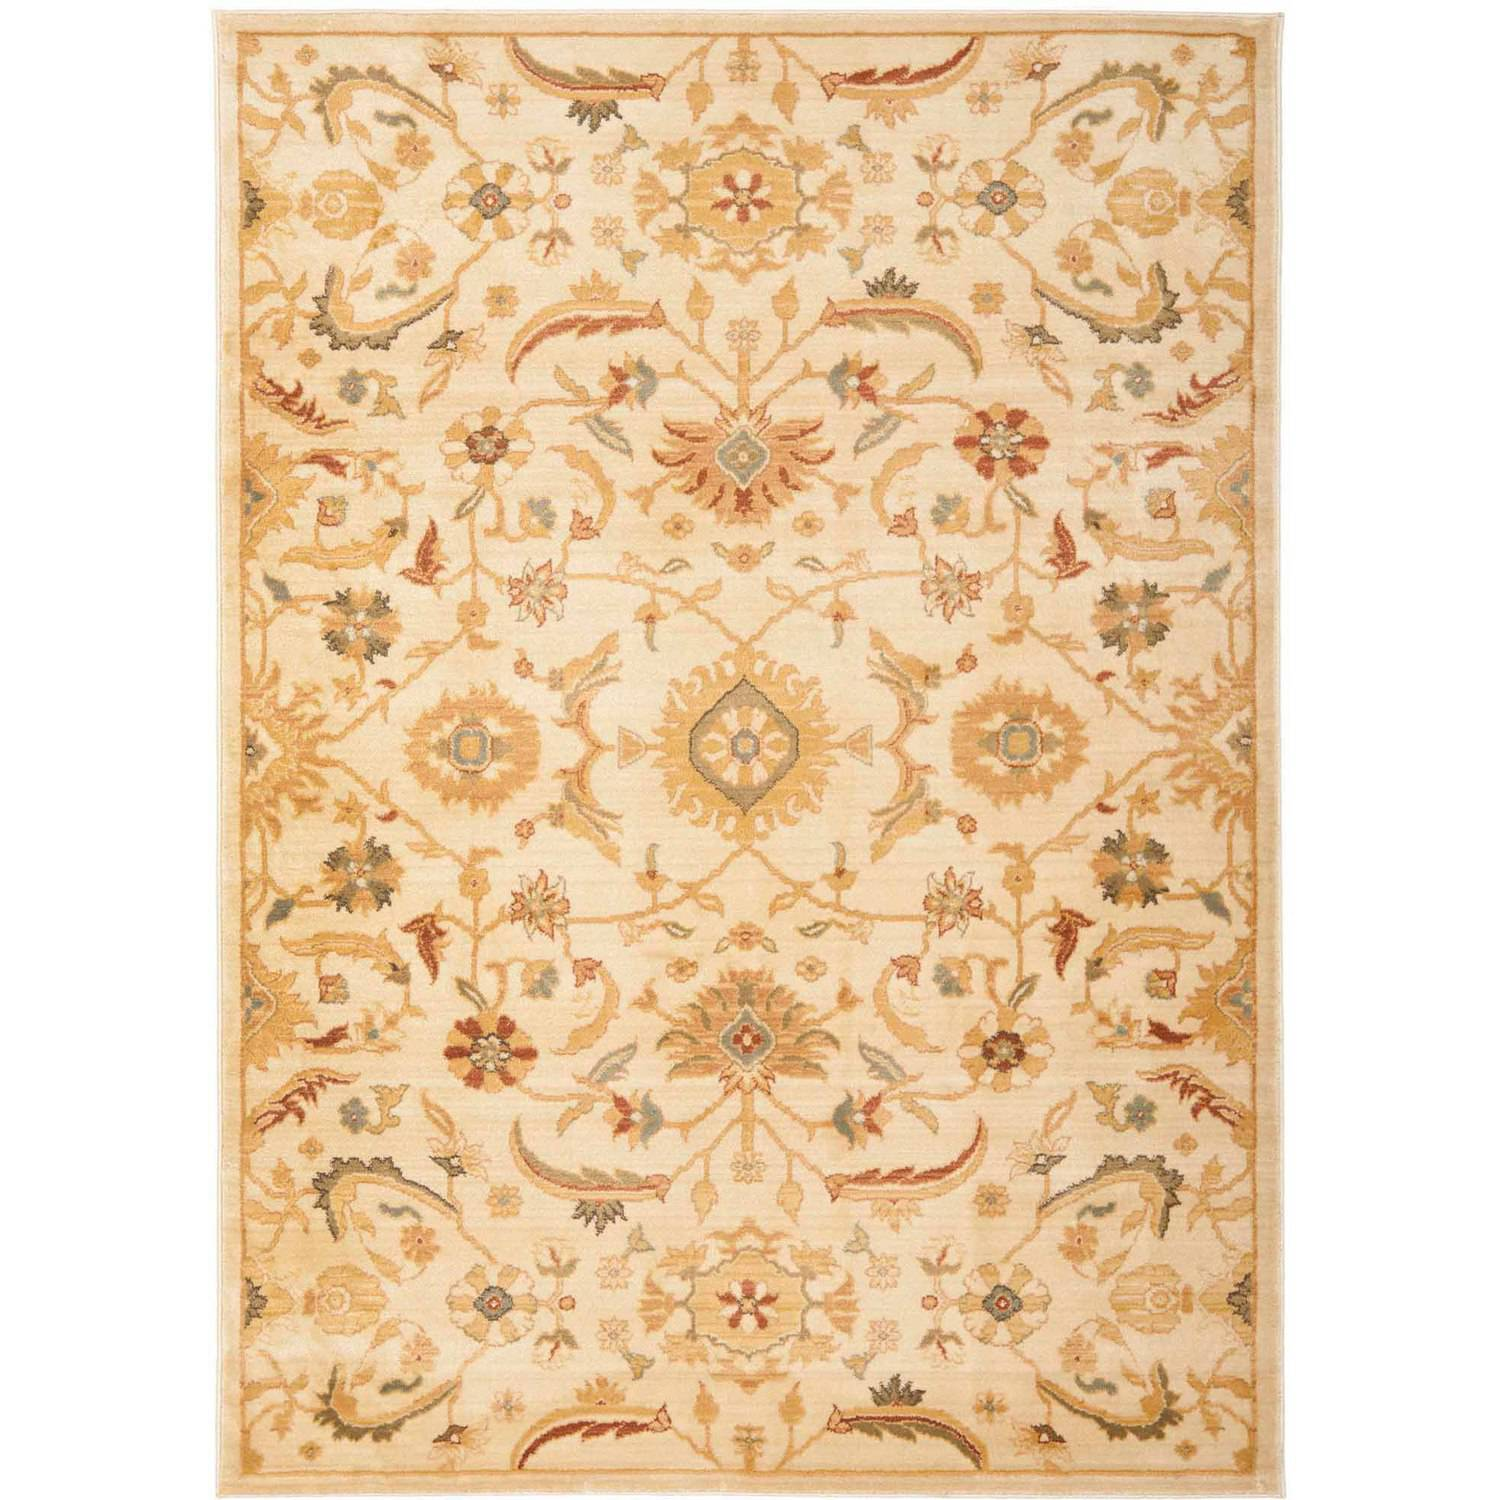 Safavieh Heirloom Annora Power Loomed Area Rug